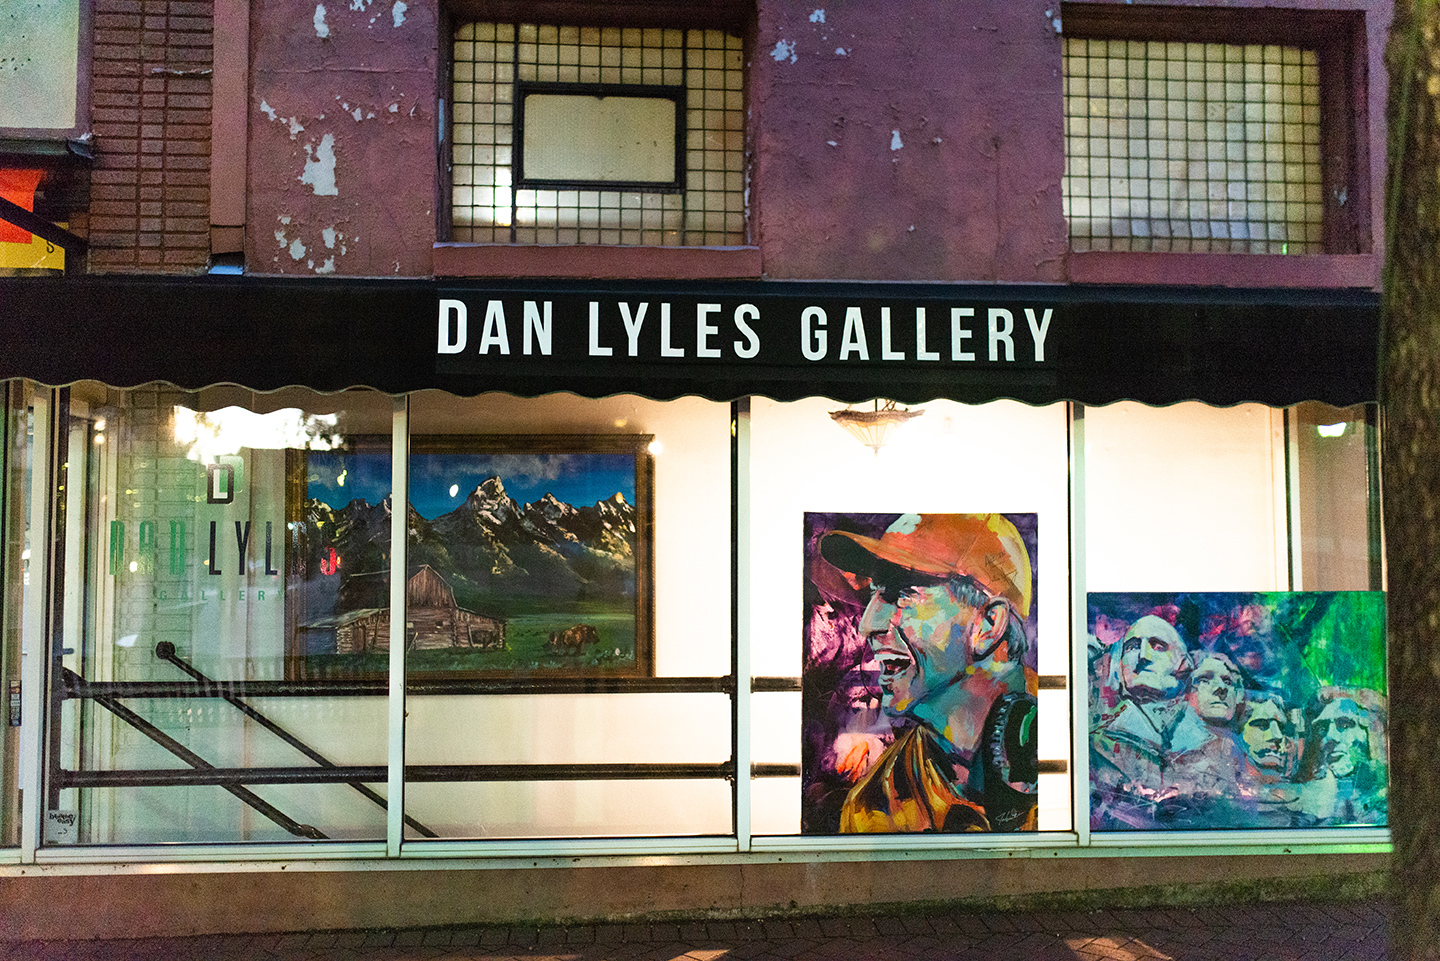 Currently Dan is getting spot lights and various artists/mediums hanging in this front, window space.